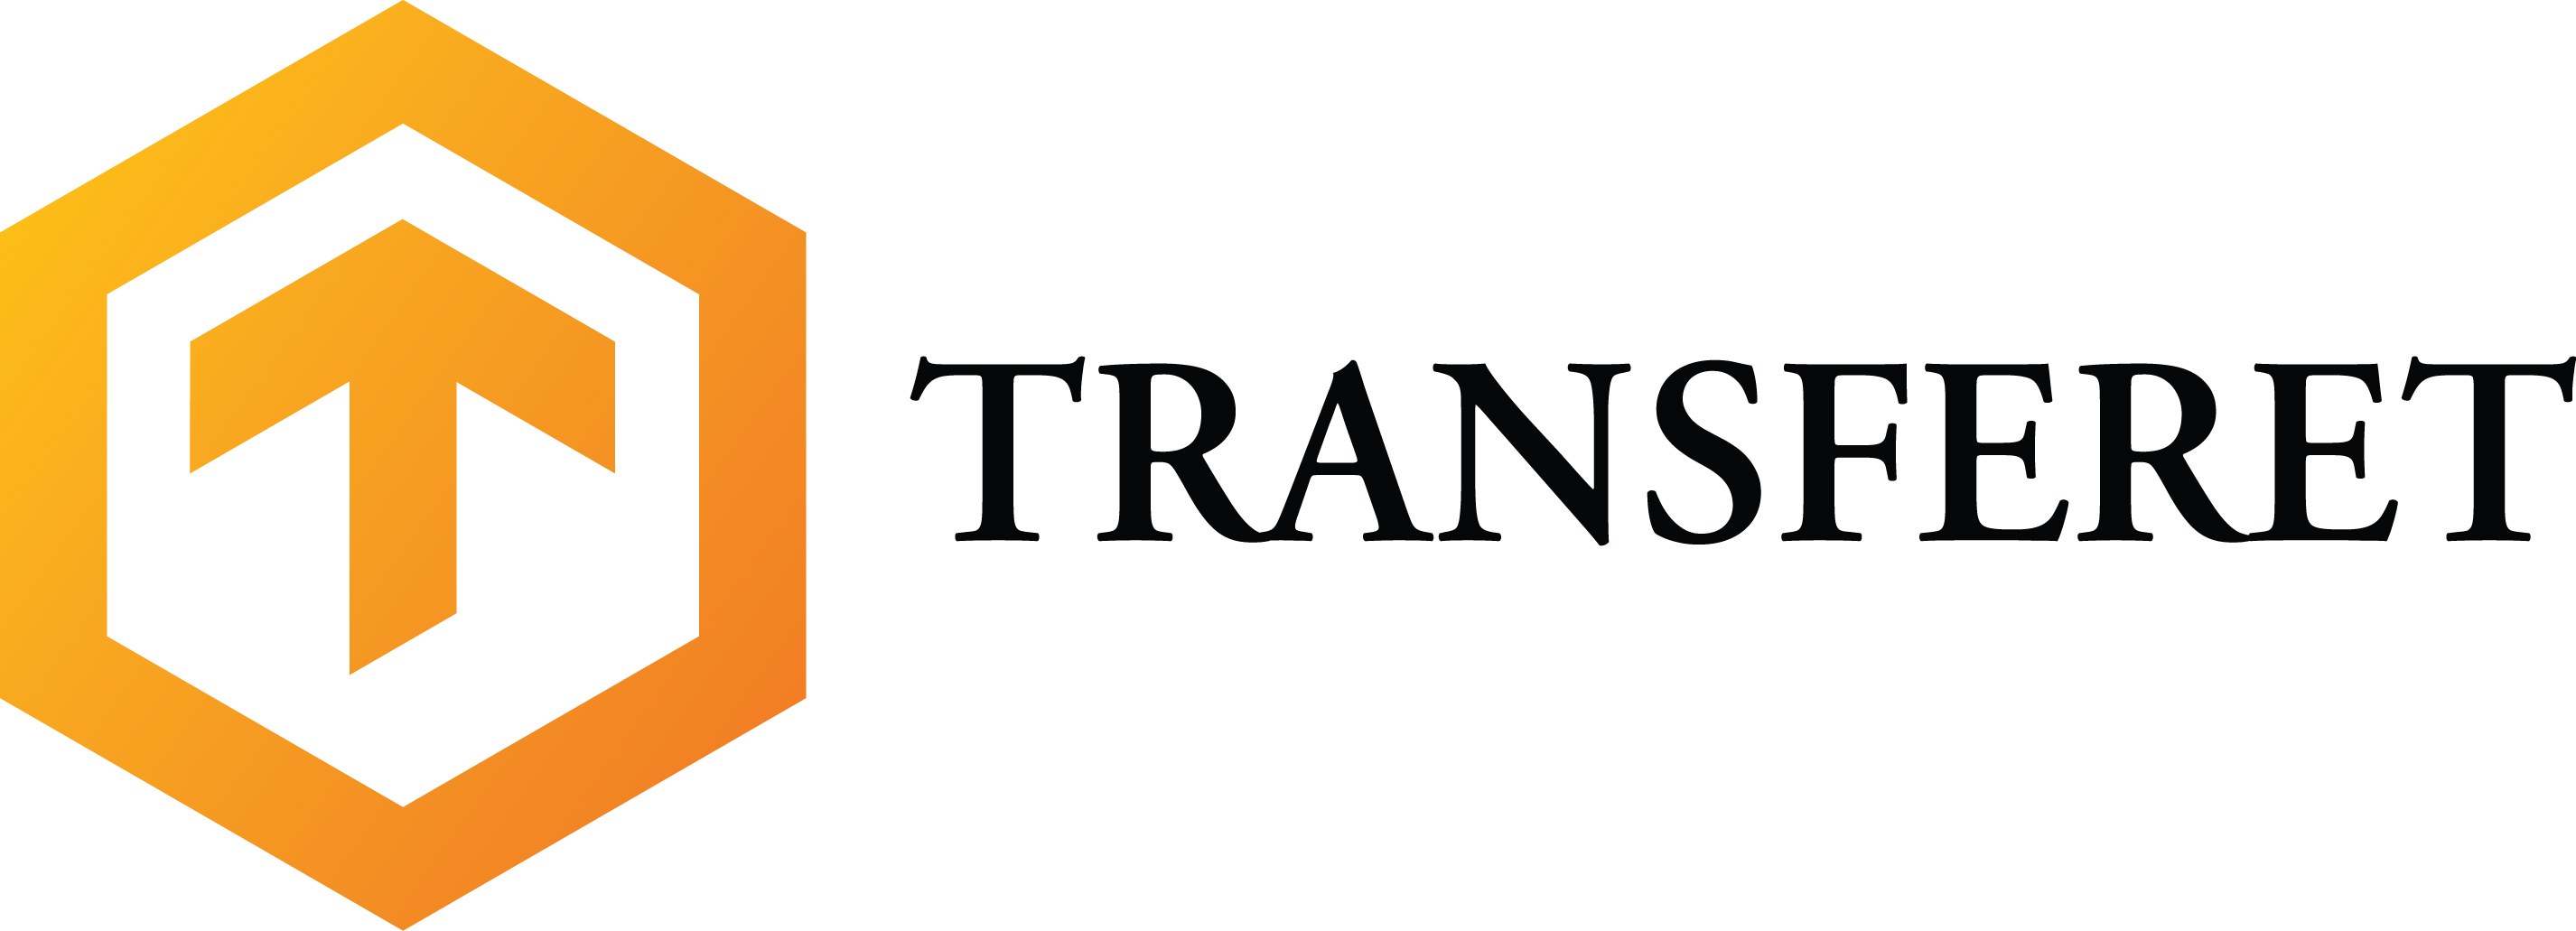 Transferet-Relocation-Services